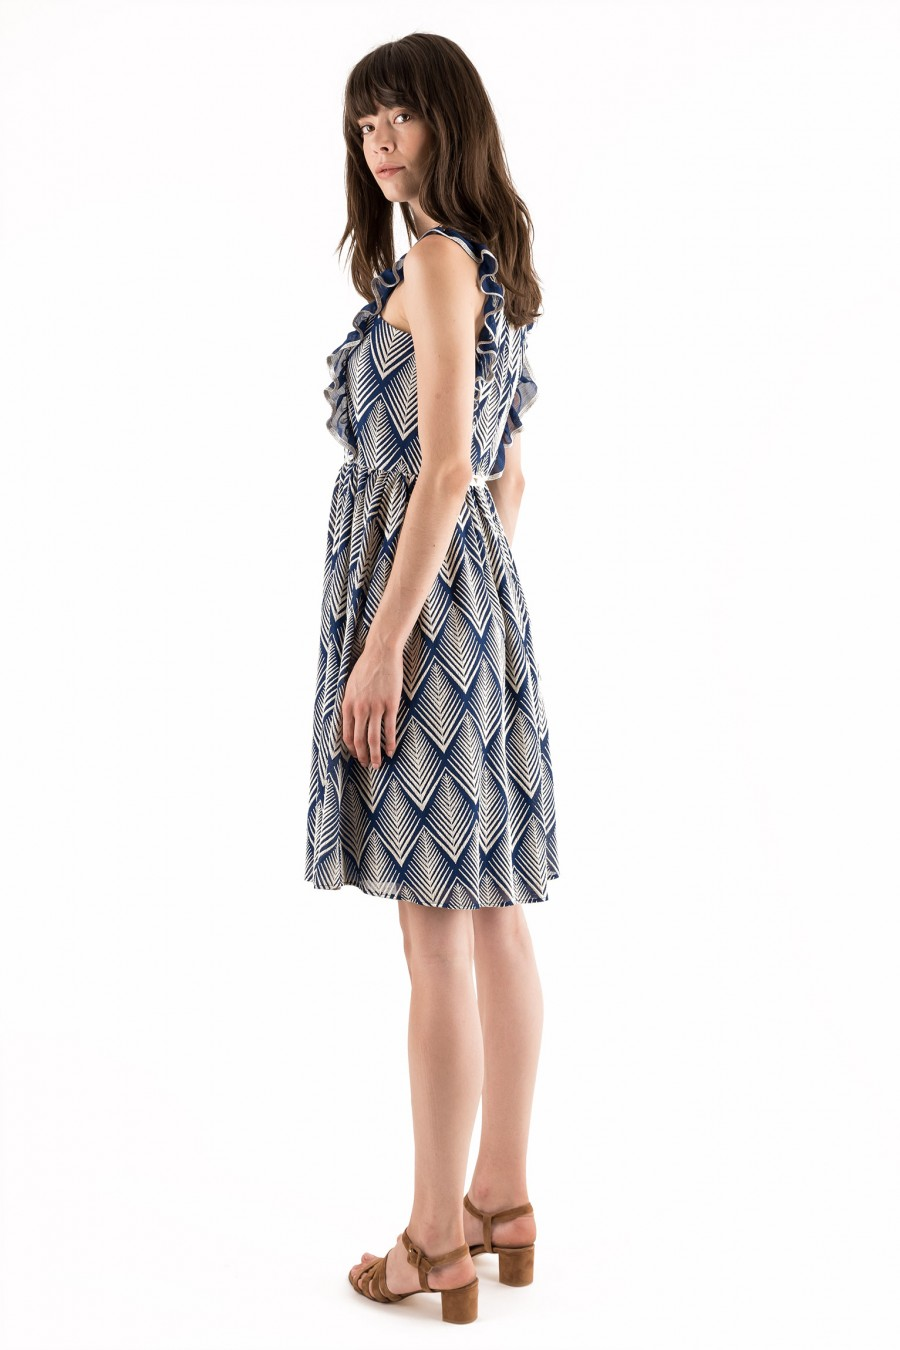 Elegant blue dress with with ruches